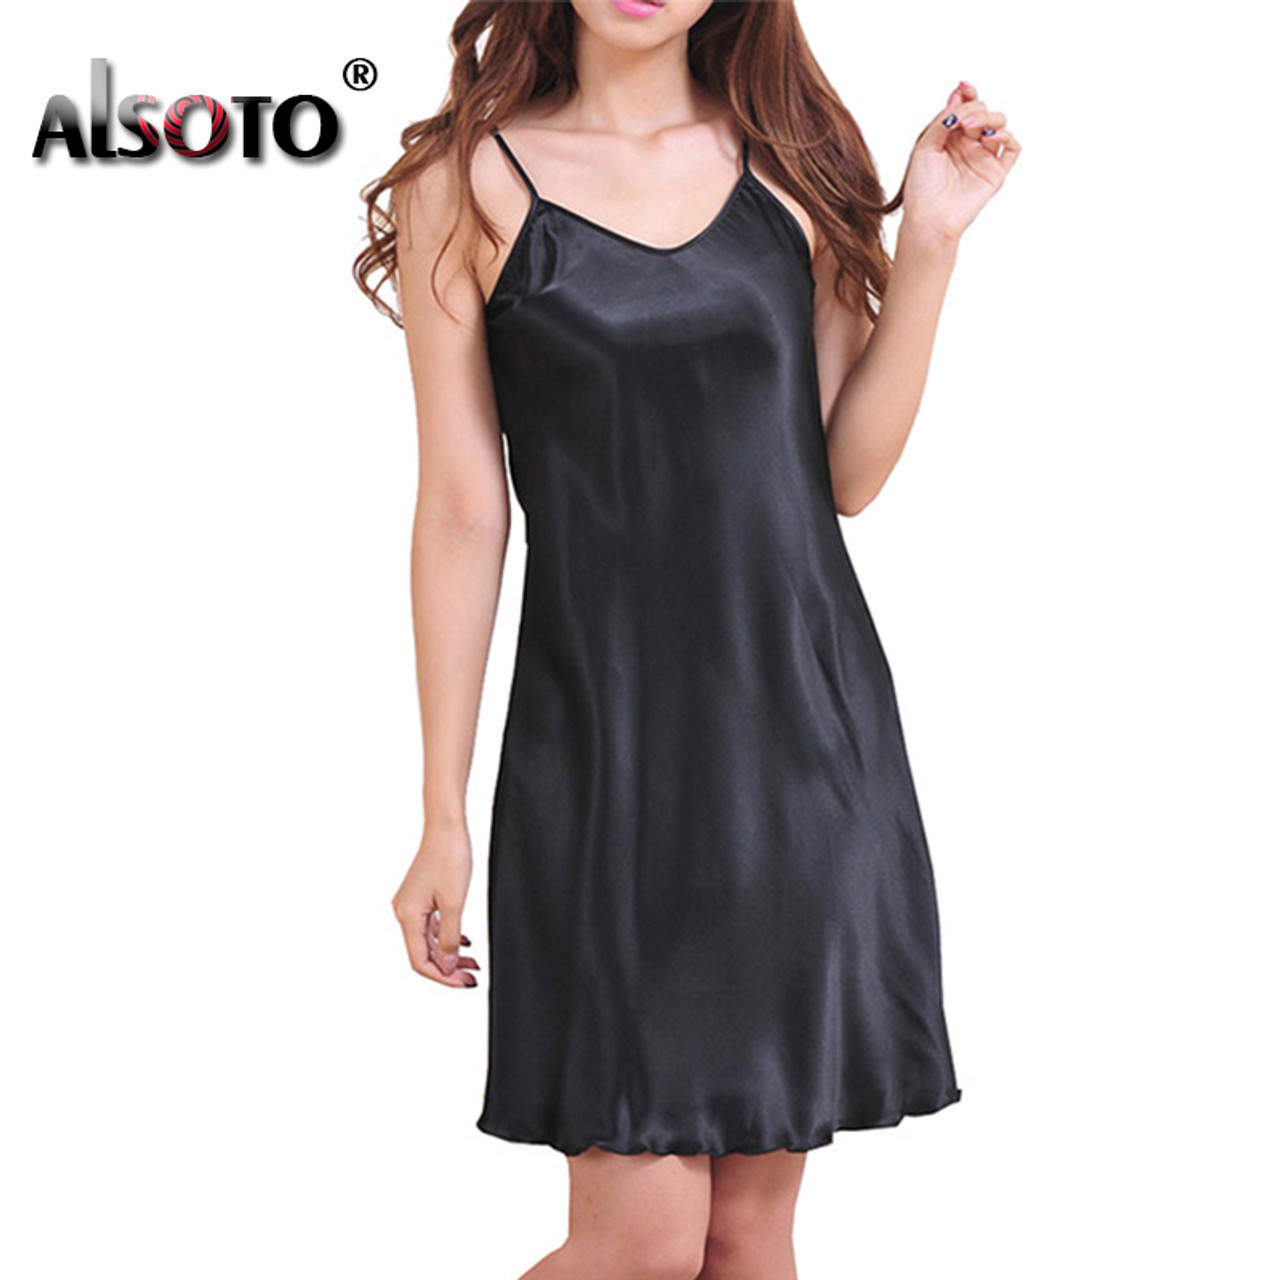 46fabade248 Ladies Sexy Silk Satin Night Dress Sleeveless Nighties V-neck Nightwear For Women  Nightgown Plus Size Nightdress Sleepwear - OnshopDeals.Com